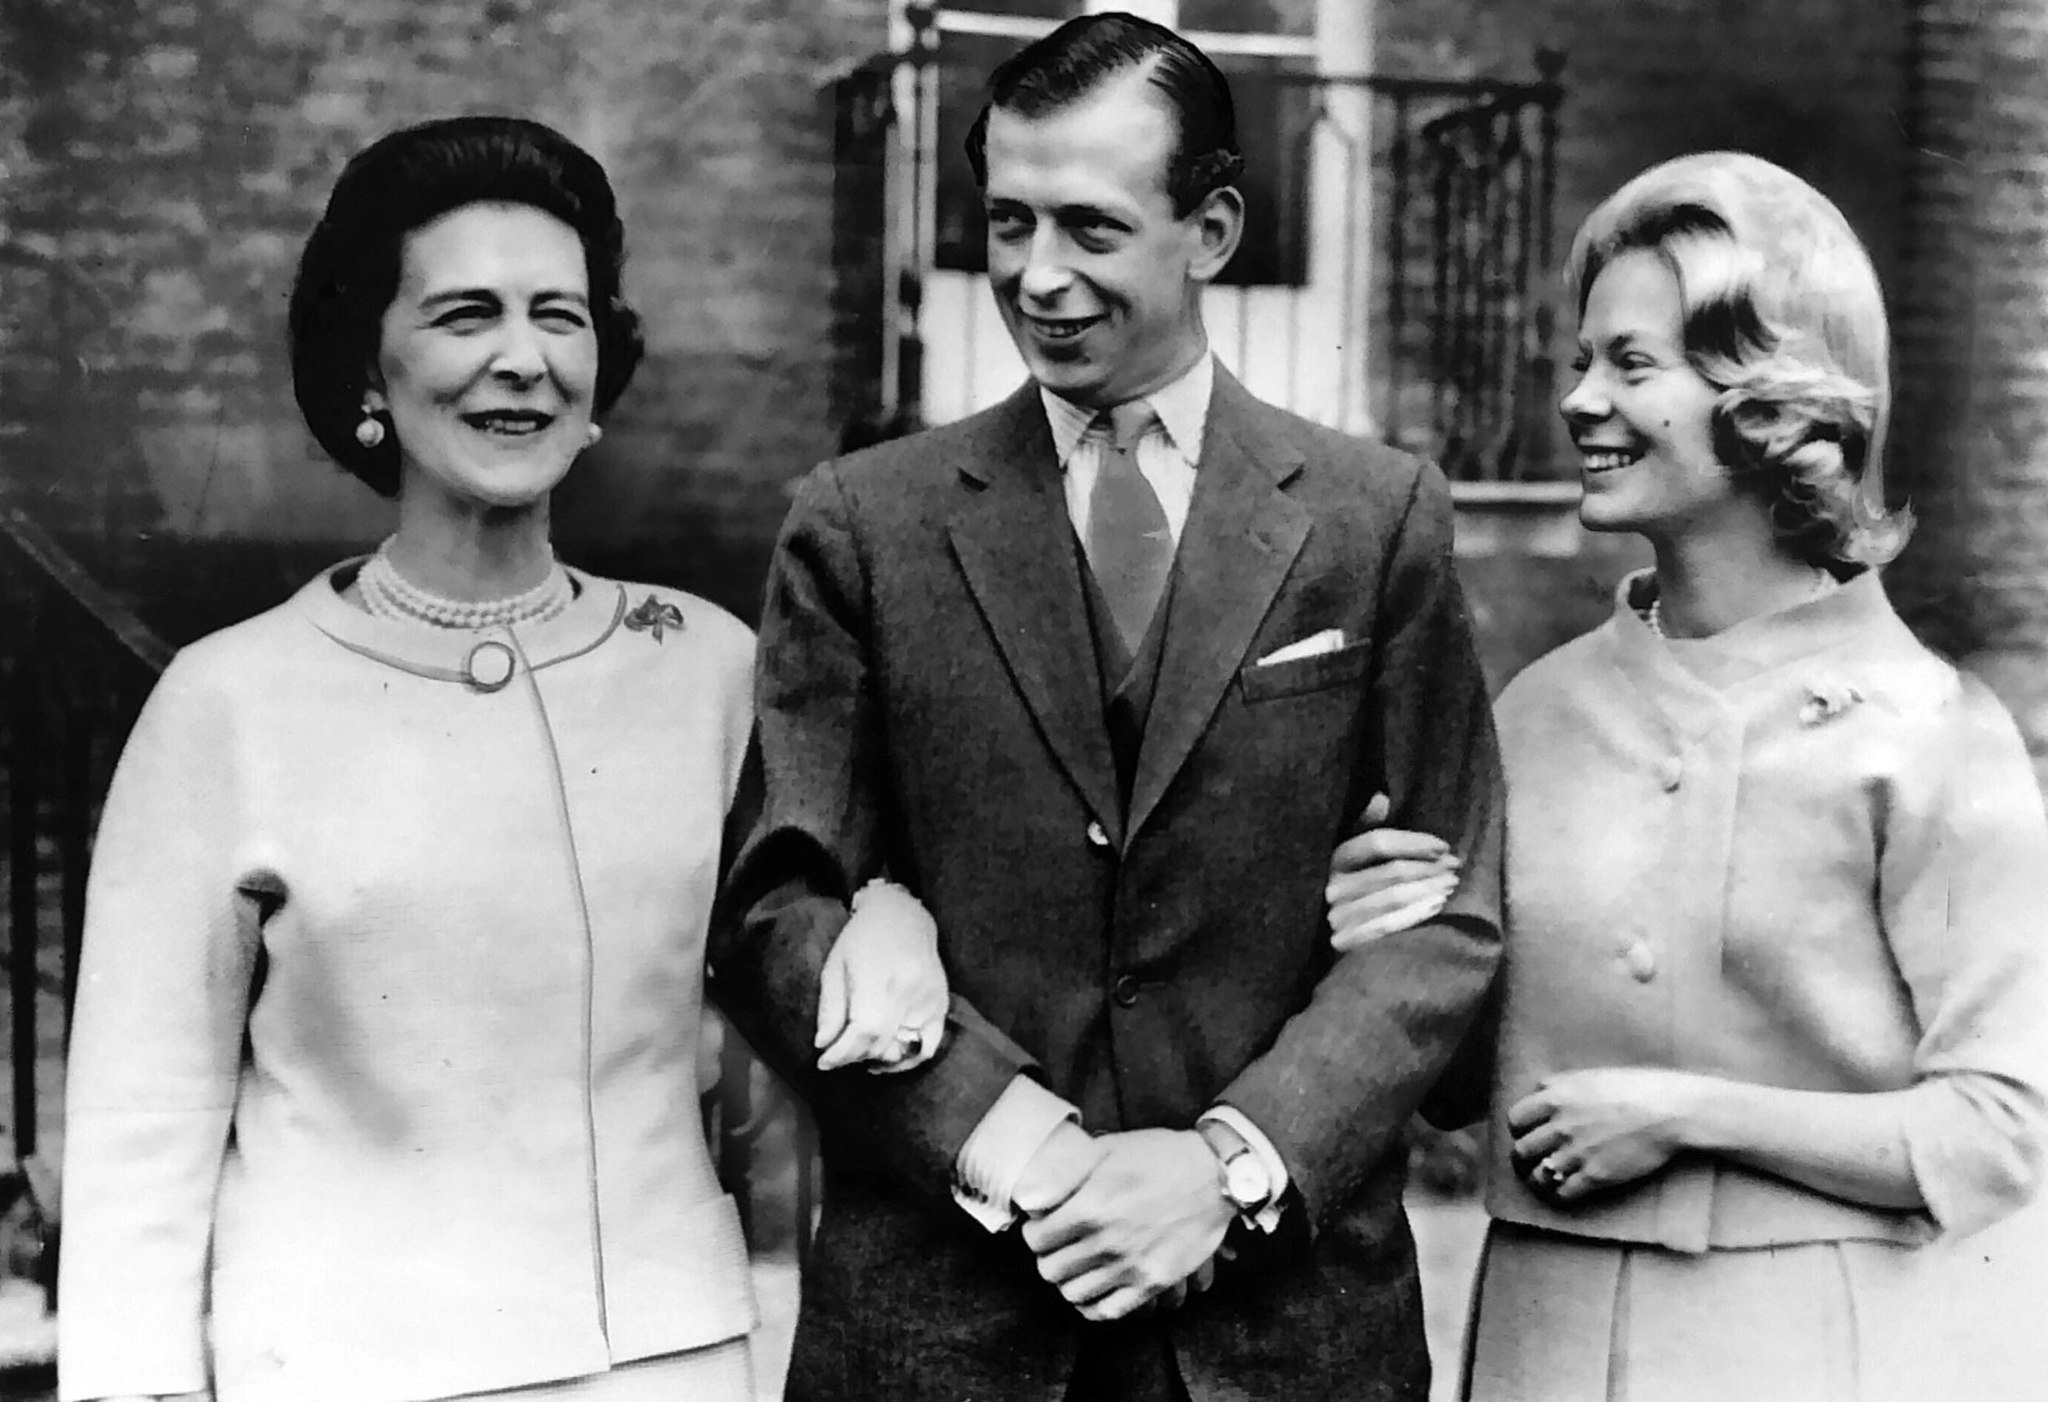 March 11, 1961: Duchess of Kent, at the left, walks with her son, Prince Edward, Duke of Kent and hi